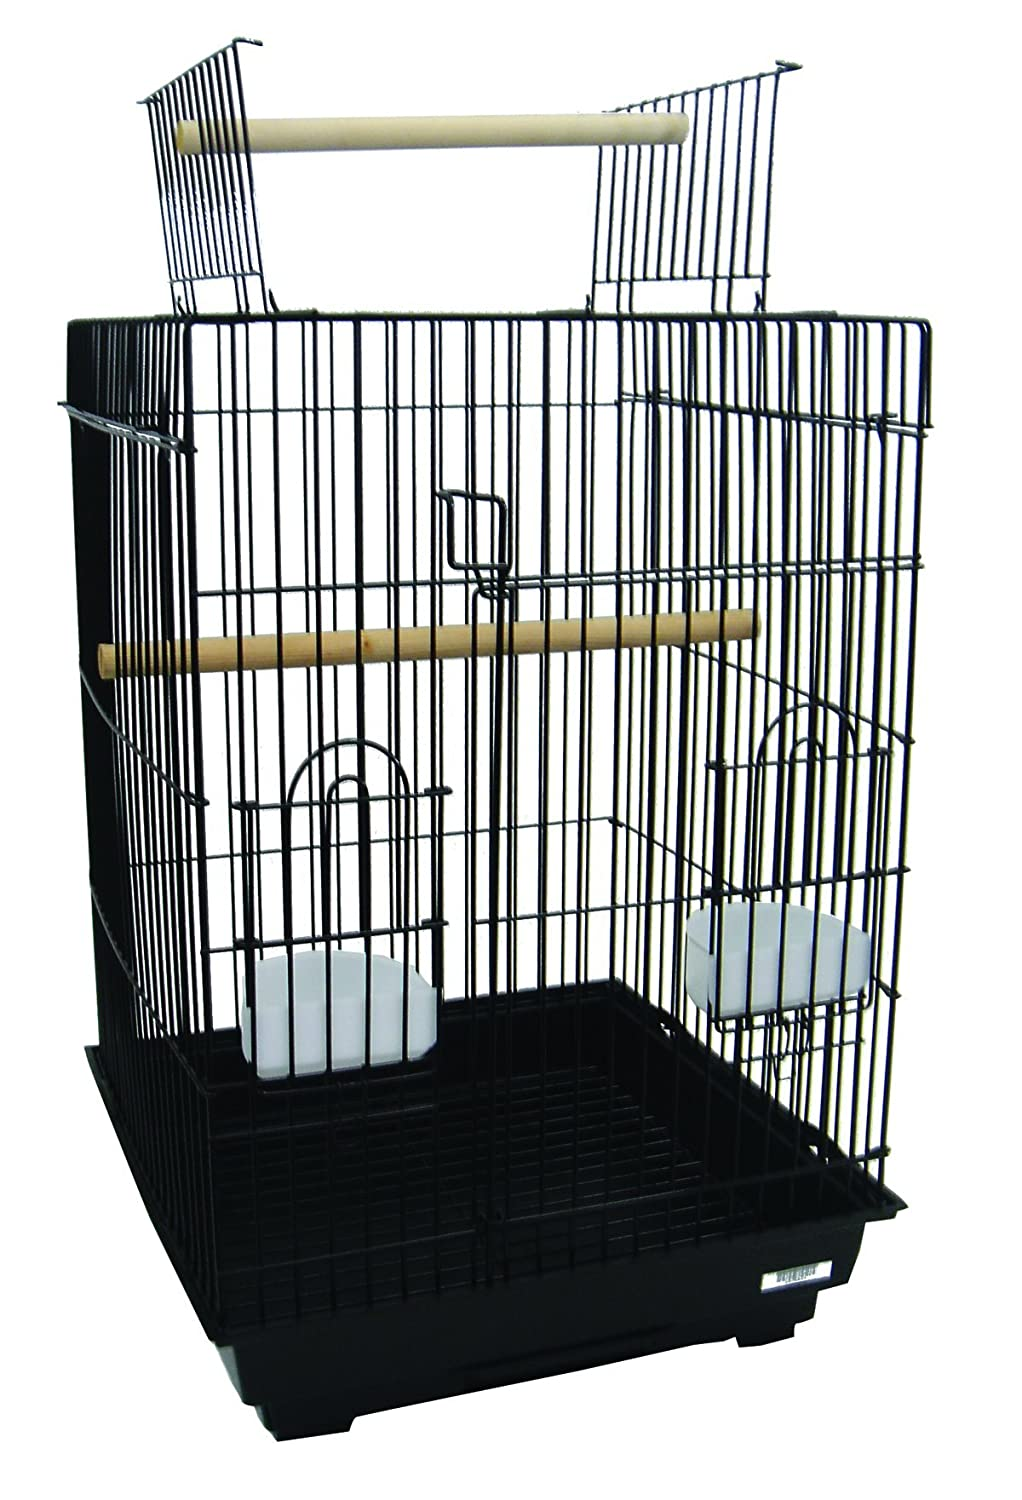 YML A5984 3/4-Inch Bar Spacing Open Top Small Parrot Cage with Stand, 18-Inch by 18-Inch, Black A5984BLK